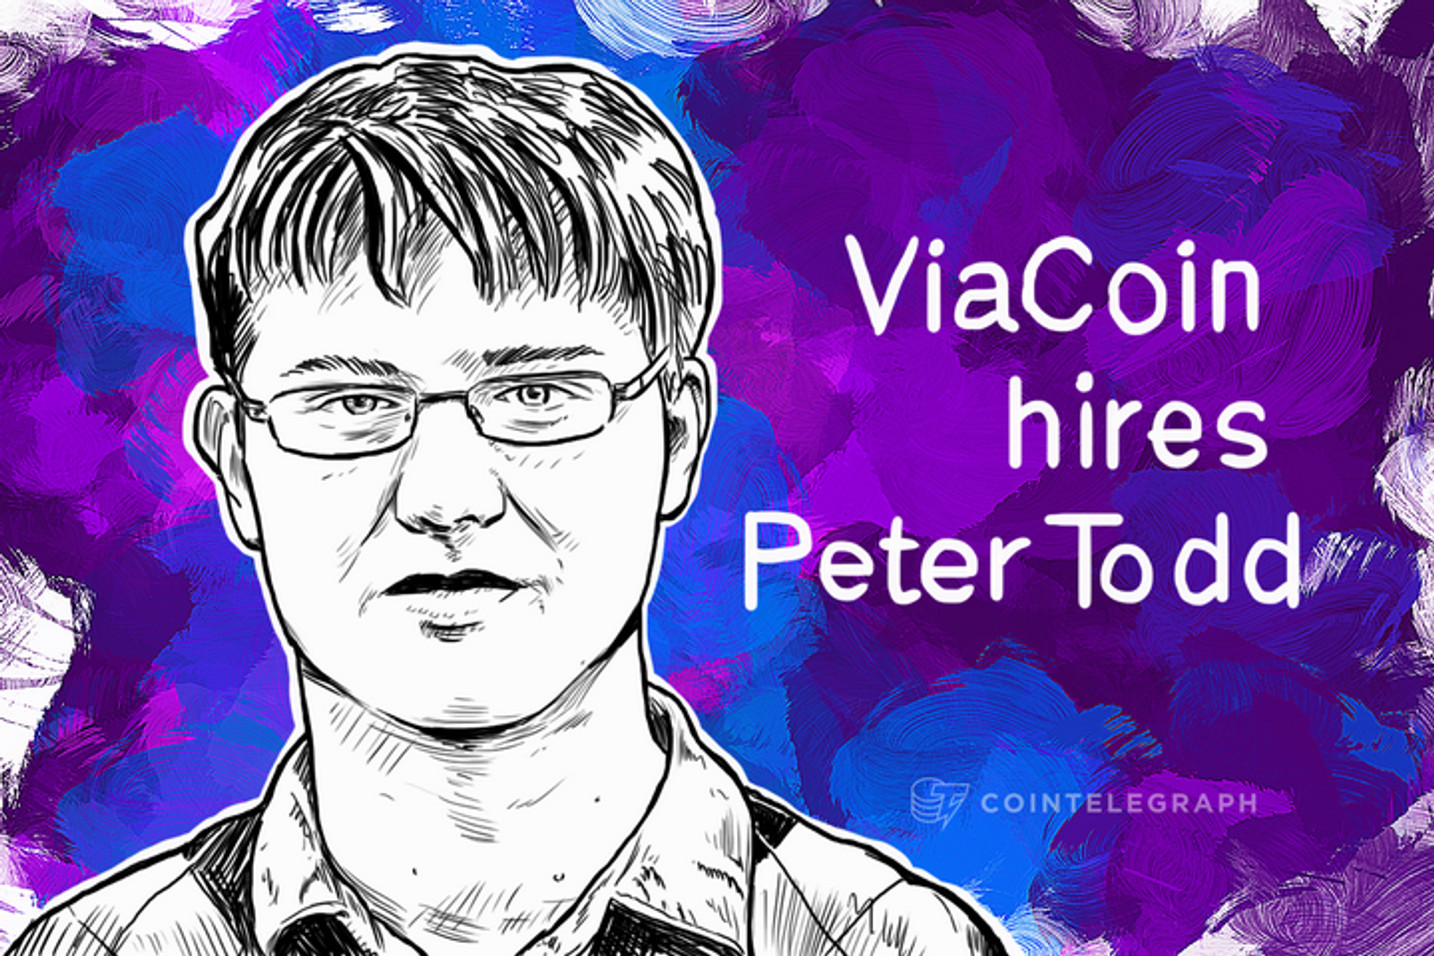 ViaCoin hires Peter Todd